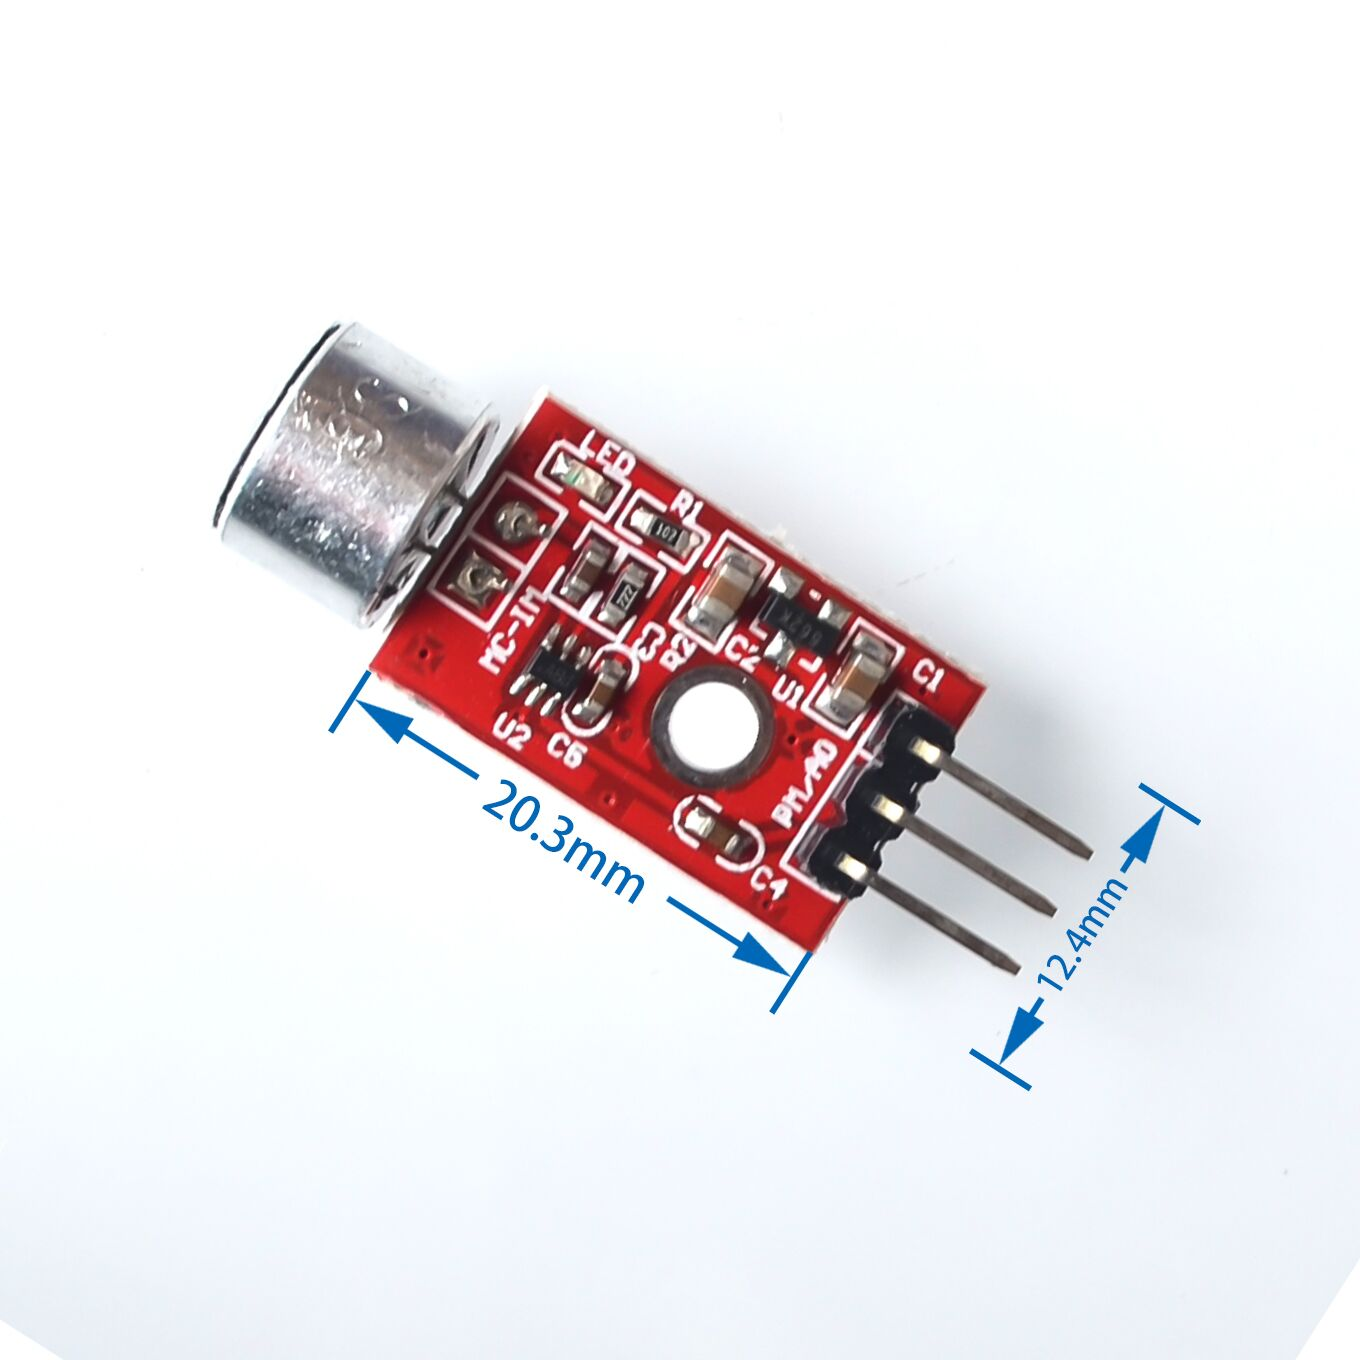 Max9812 Max9812l Microphone Amplifier Sound Mic Voice Module 33v Copper Clad Boards 10x15cm 100x150x12mm High Quality For Circuit Pcb Logistics Sunyou Economic Air Mail China Post Ordinary Small Packet Plus Can Be Traced Only Befor It Arrive Your Countryplease Choose Standard